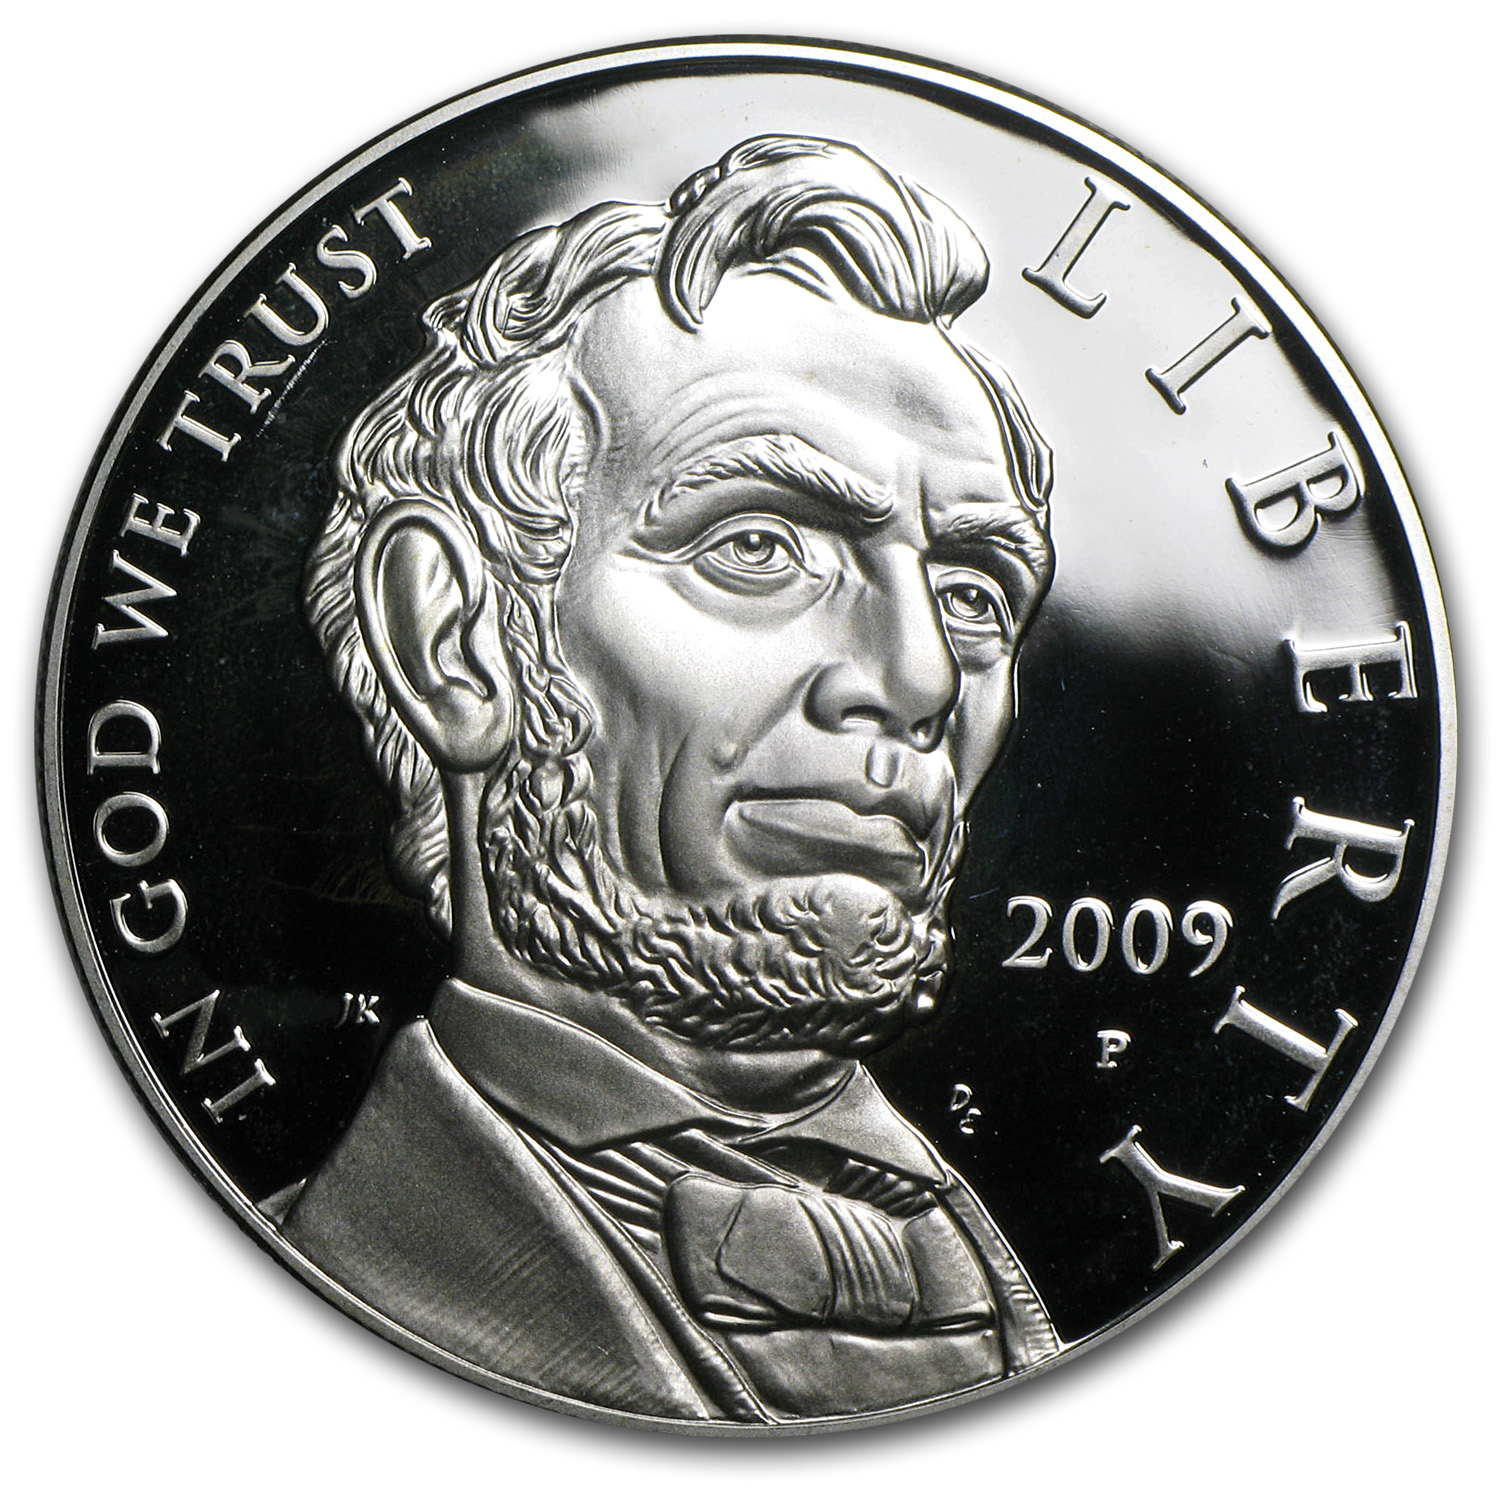 2009-P Abraham Lincoln $1 Silver Commem Proof (Capsule only)